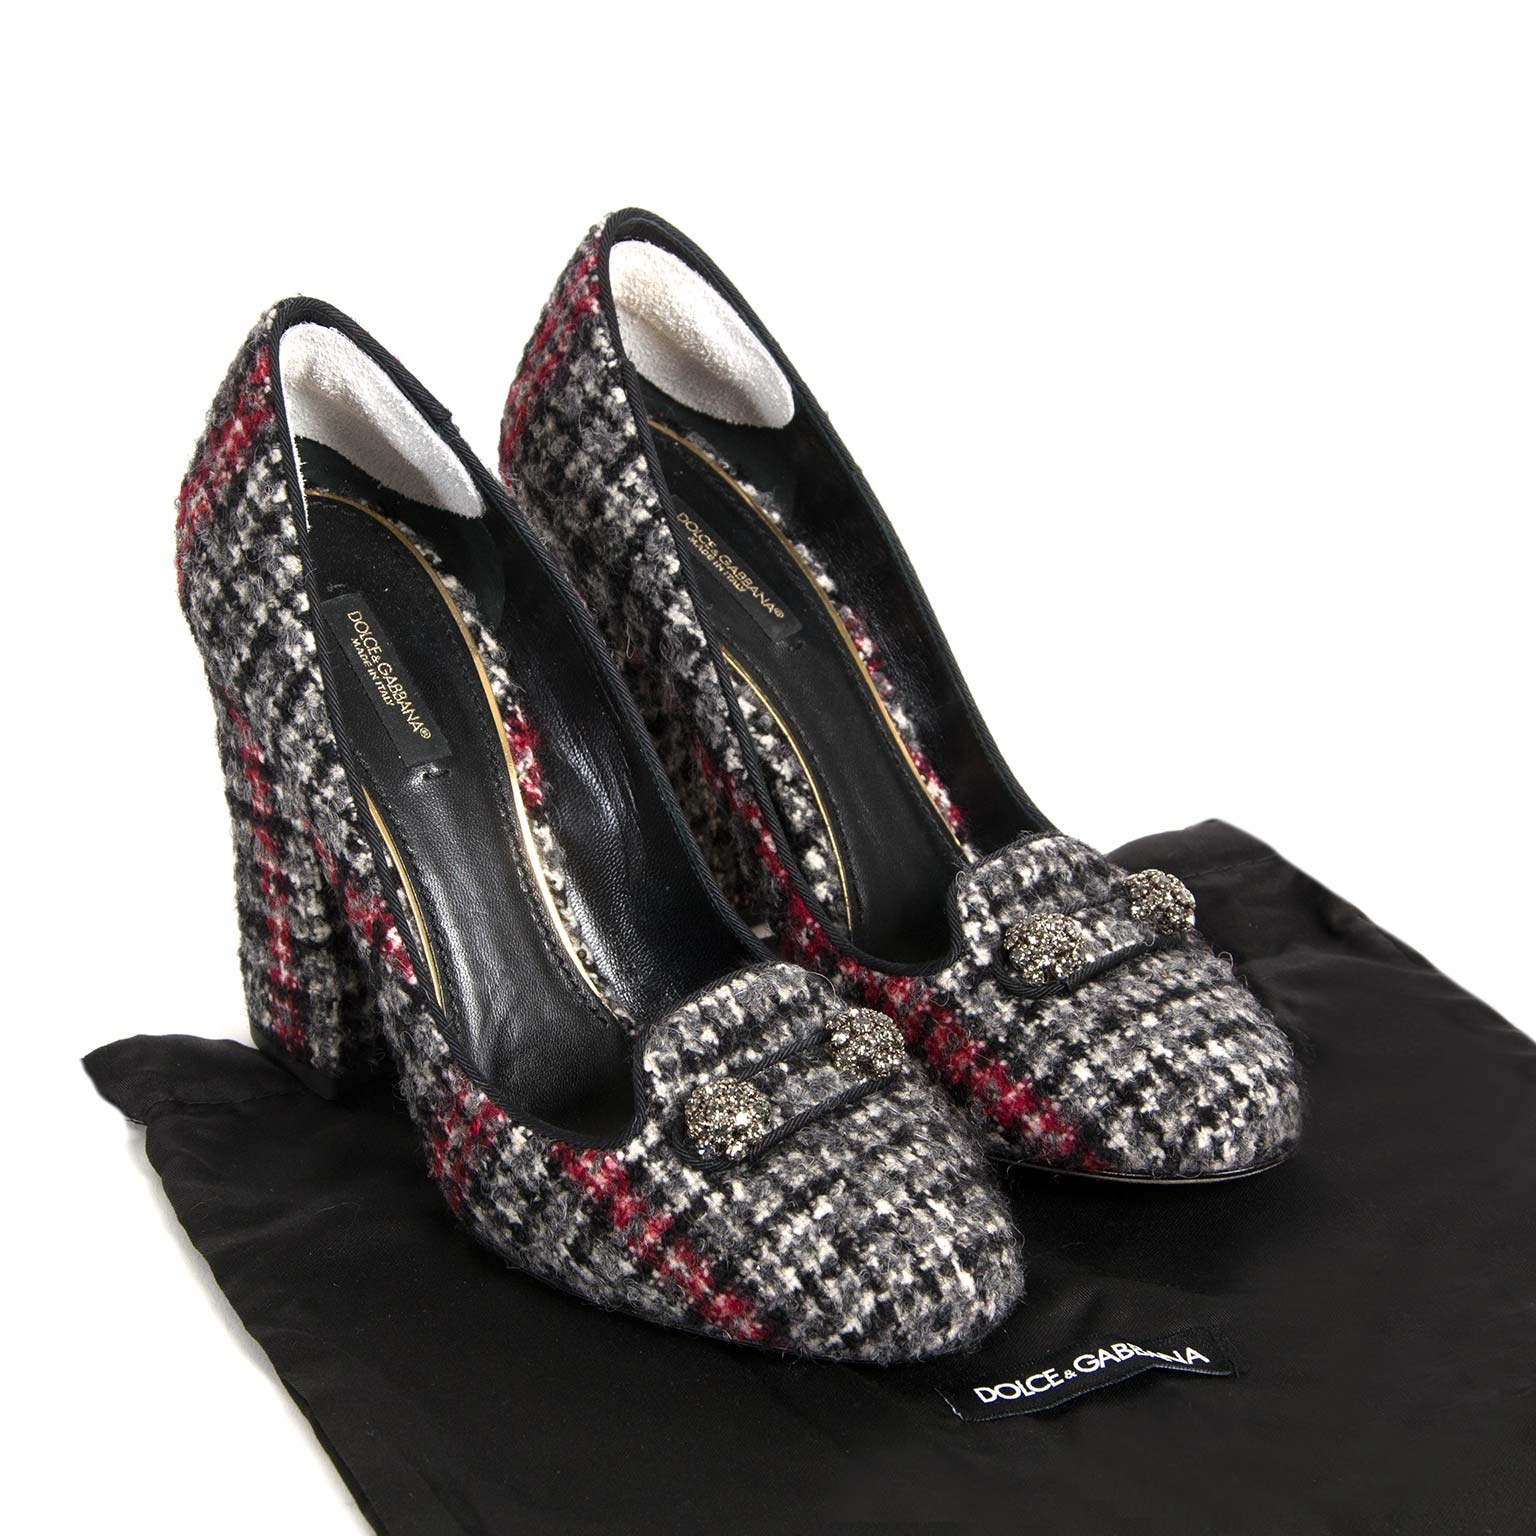 second hand authentic Dolce & Gabbana Tweed Pumps - Size 40 now for sale at labellov antwerp vintage online store for the best price